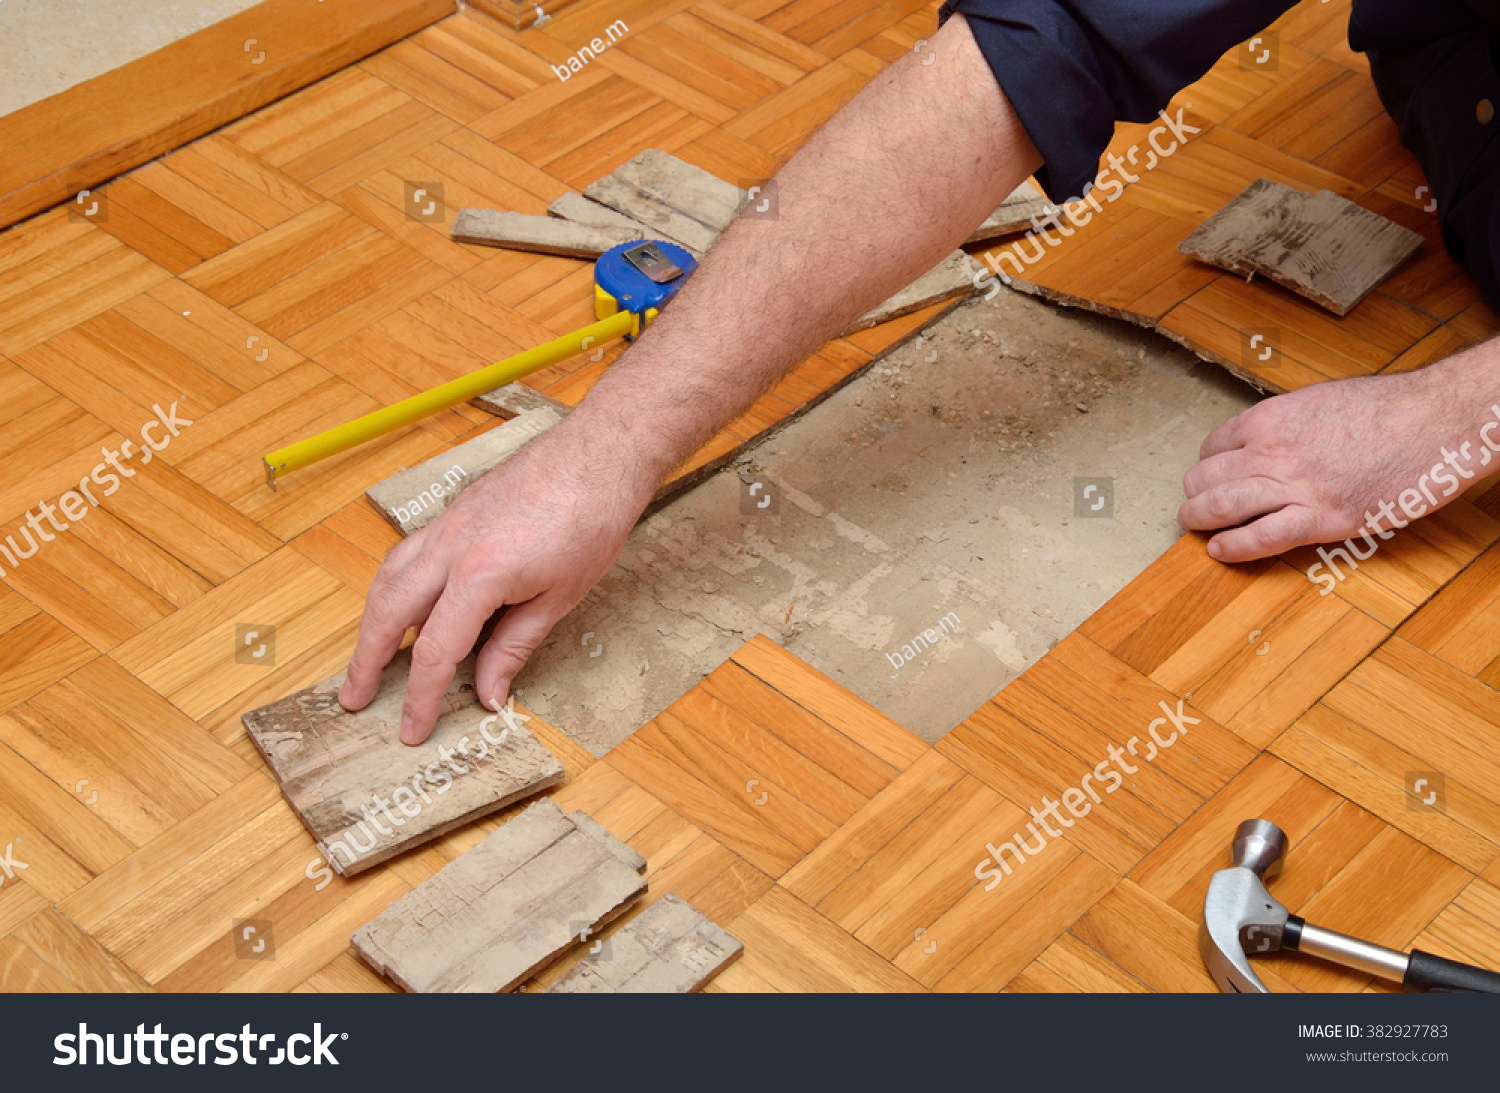 Laminate Flooring Repair Tools Laminate Flooring Ideas